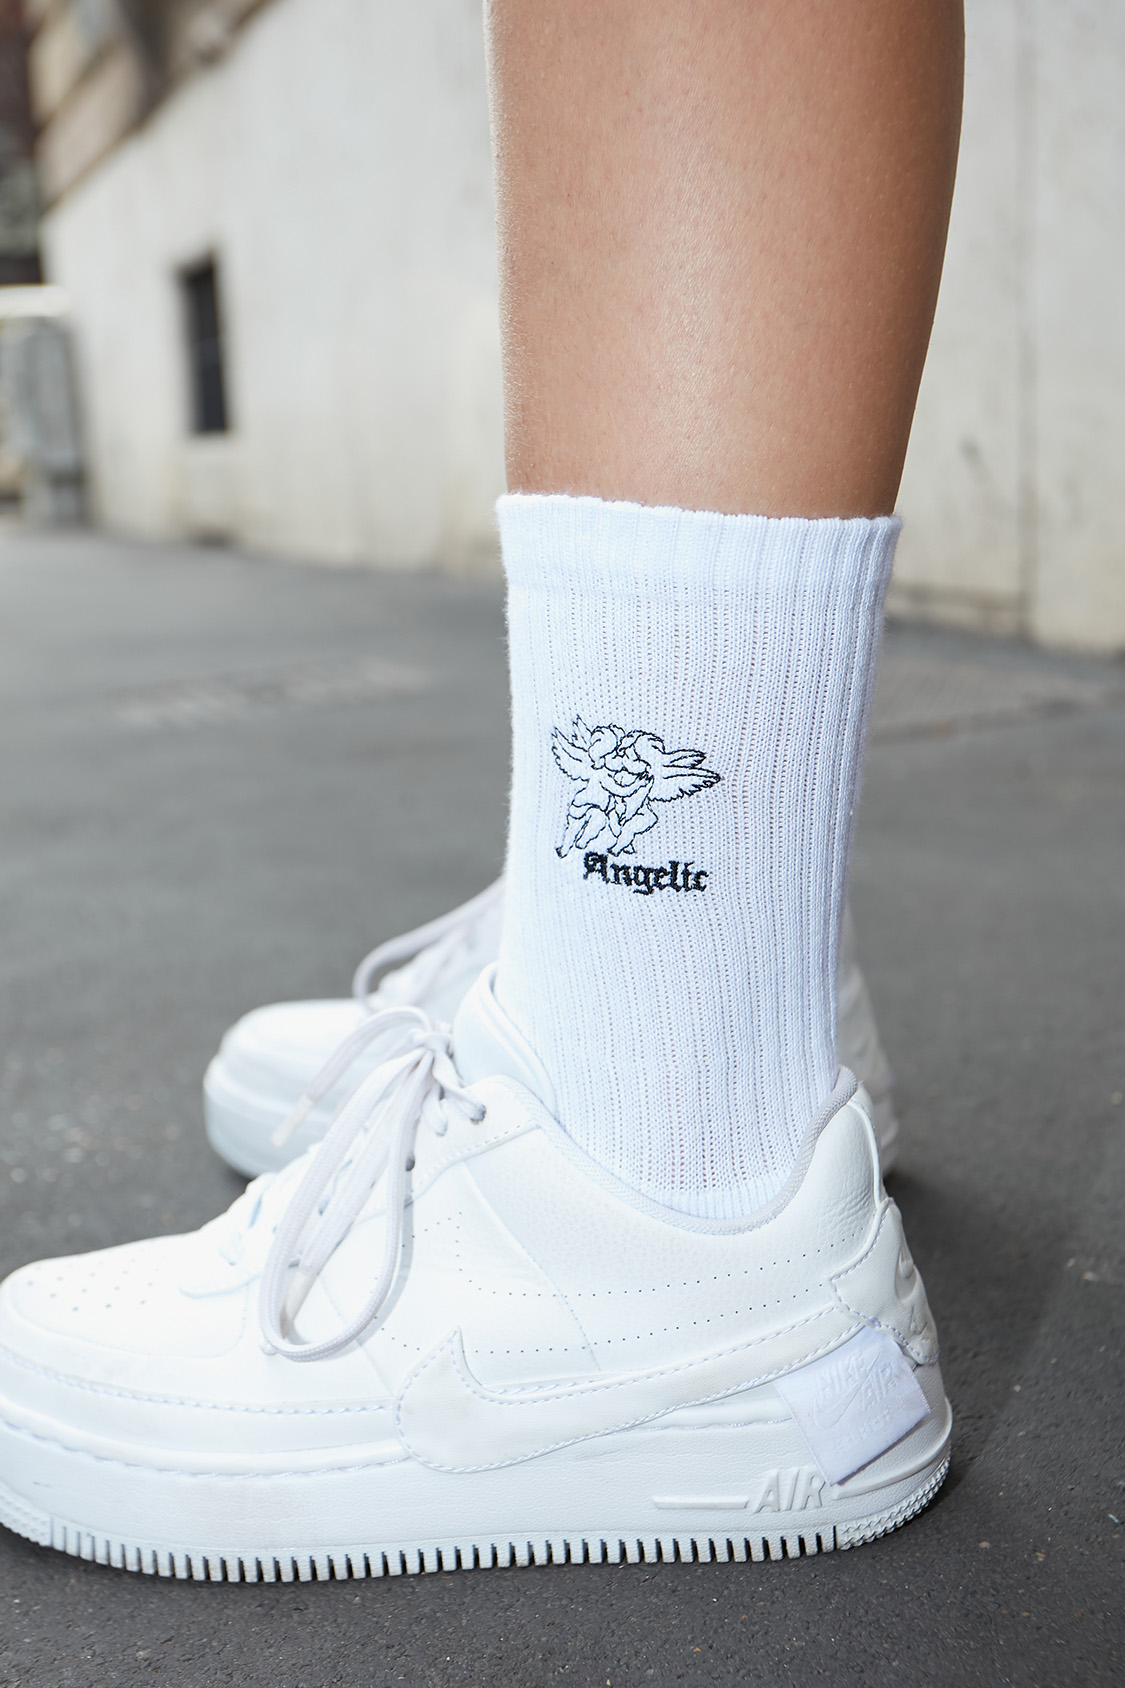 Angelic socks